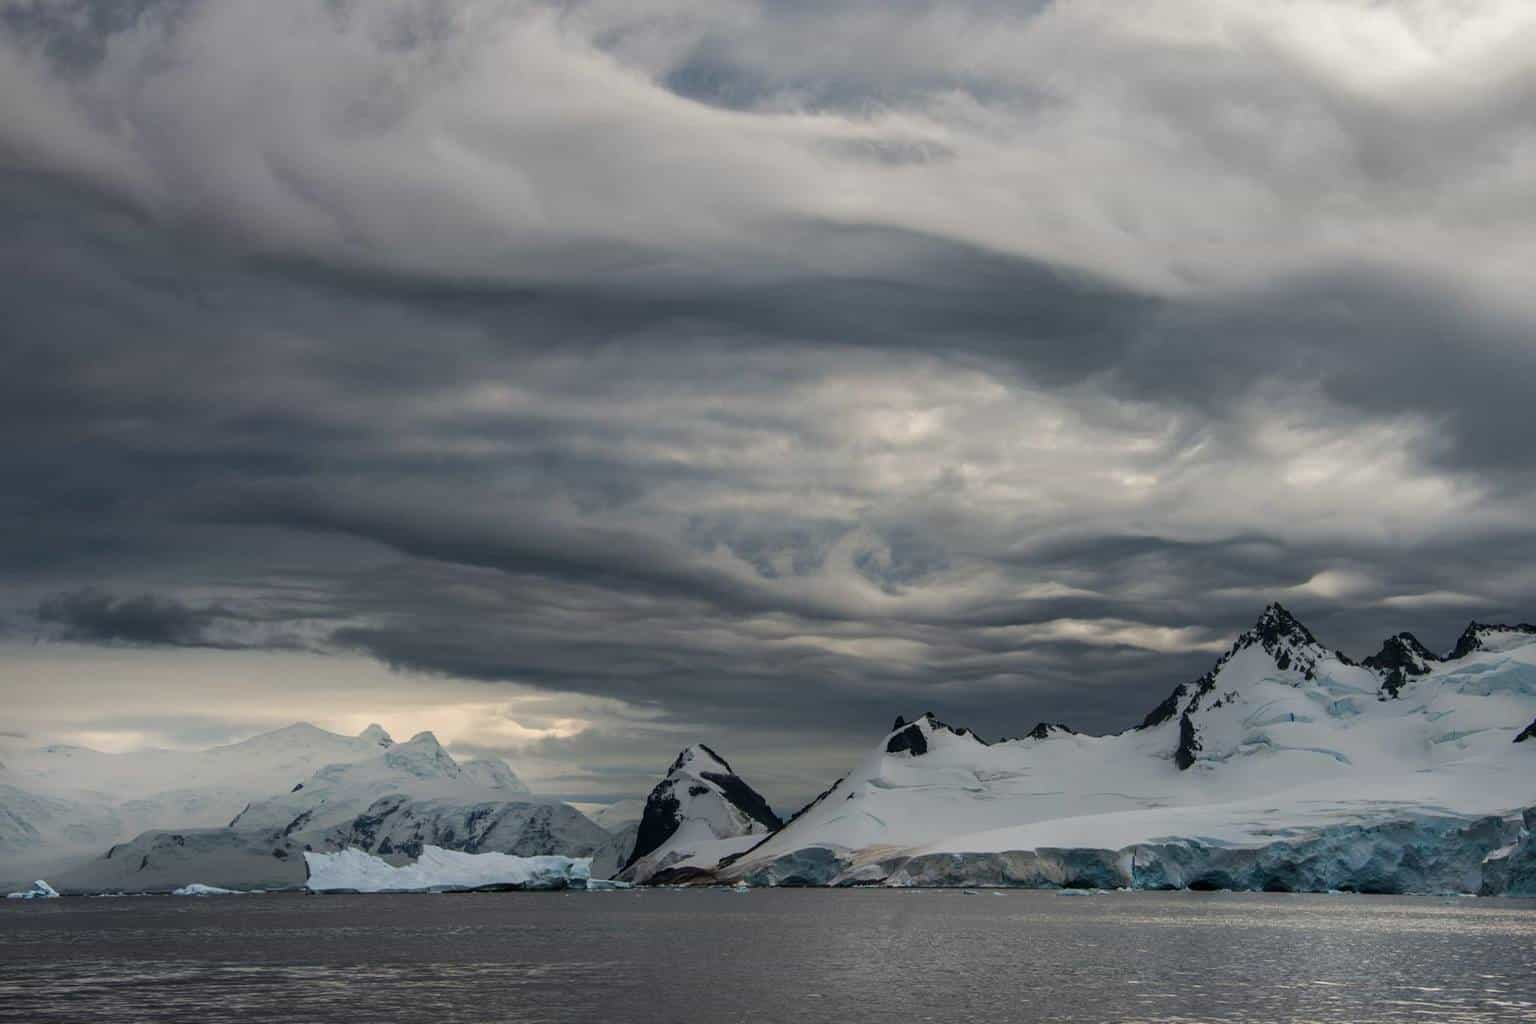 Another Antarctica pic-Asperatus Undulatus and even a little K-H wave action. — with Betsy Abrams.